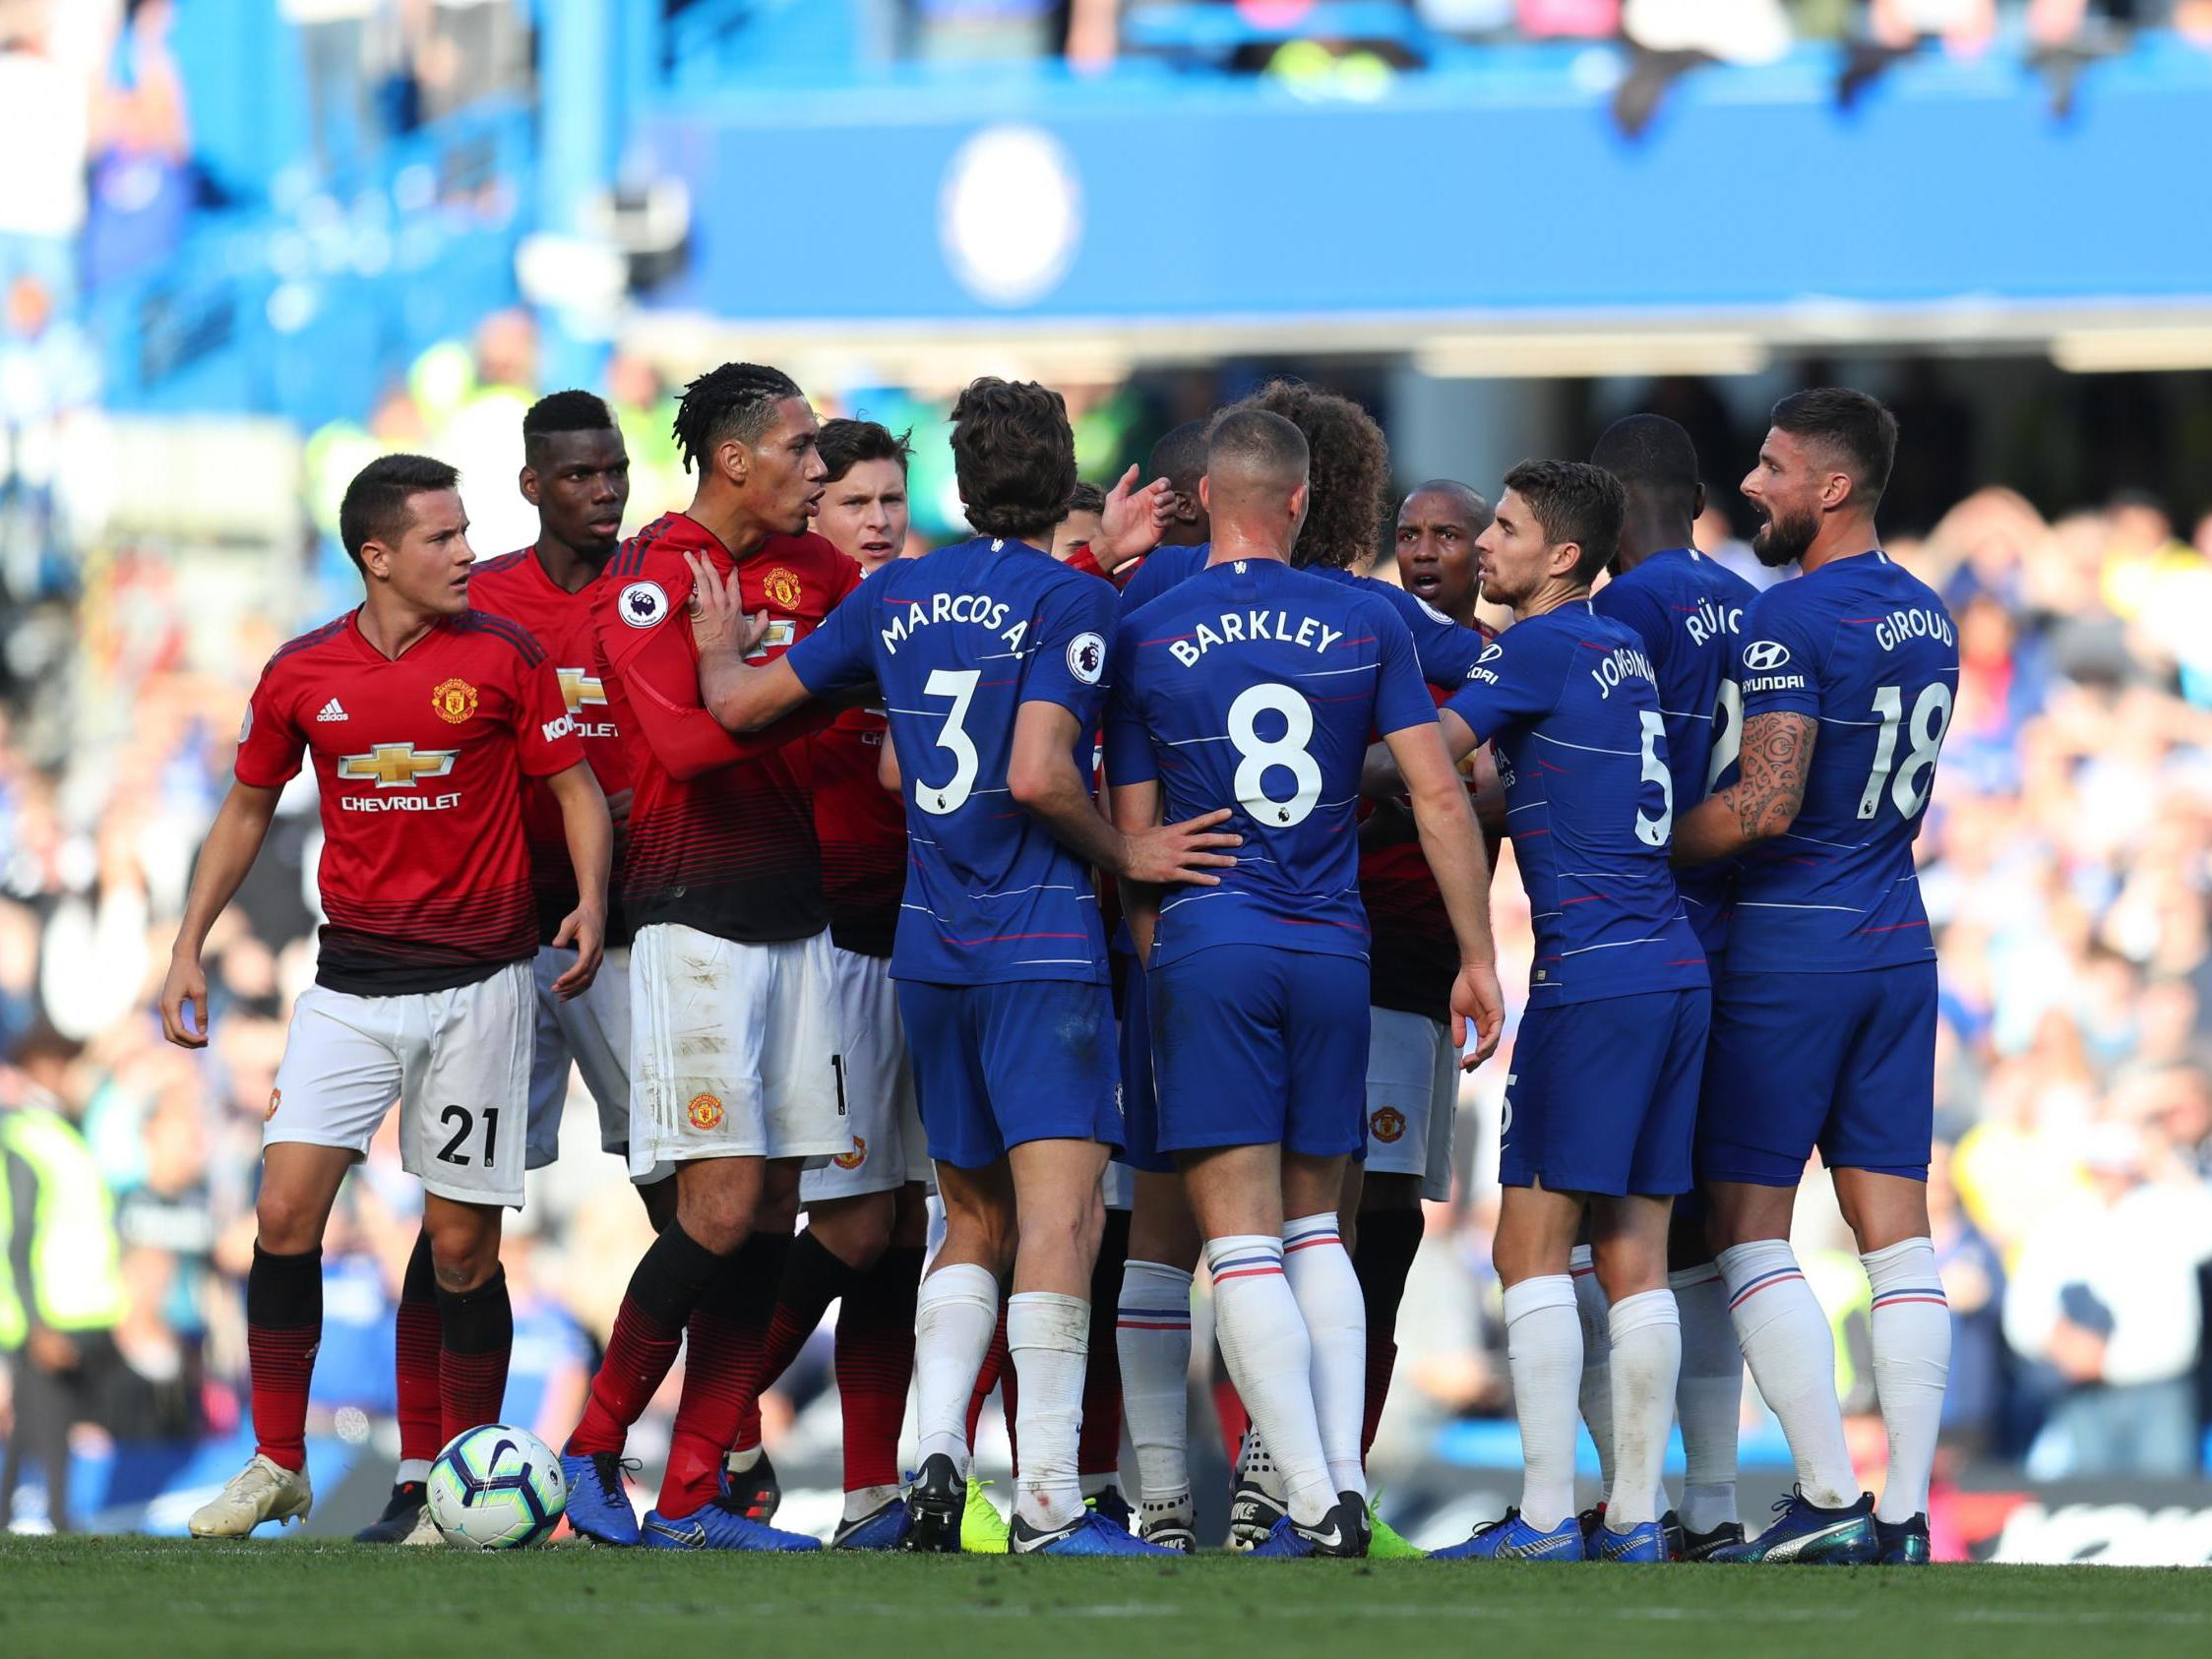 Chelsea vs Manchester United predicted line-ups: What time, what channel, how can I watch online, team news, h2h, odds and more